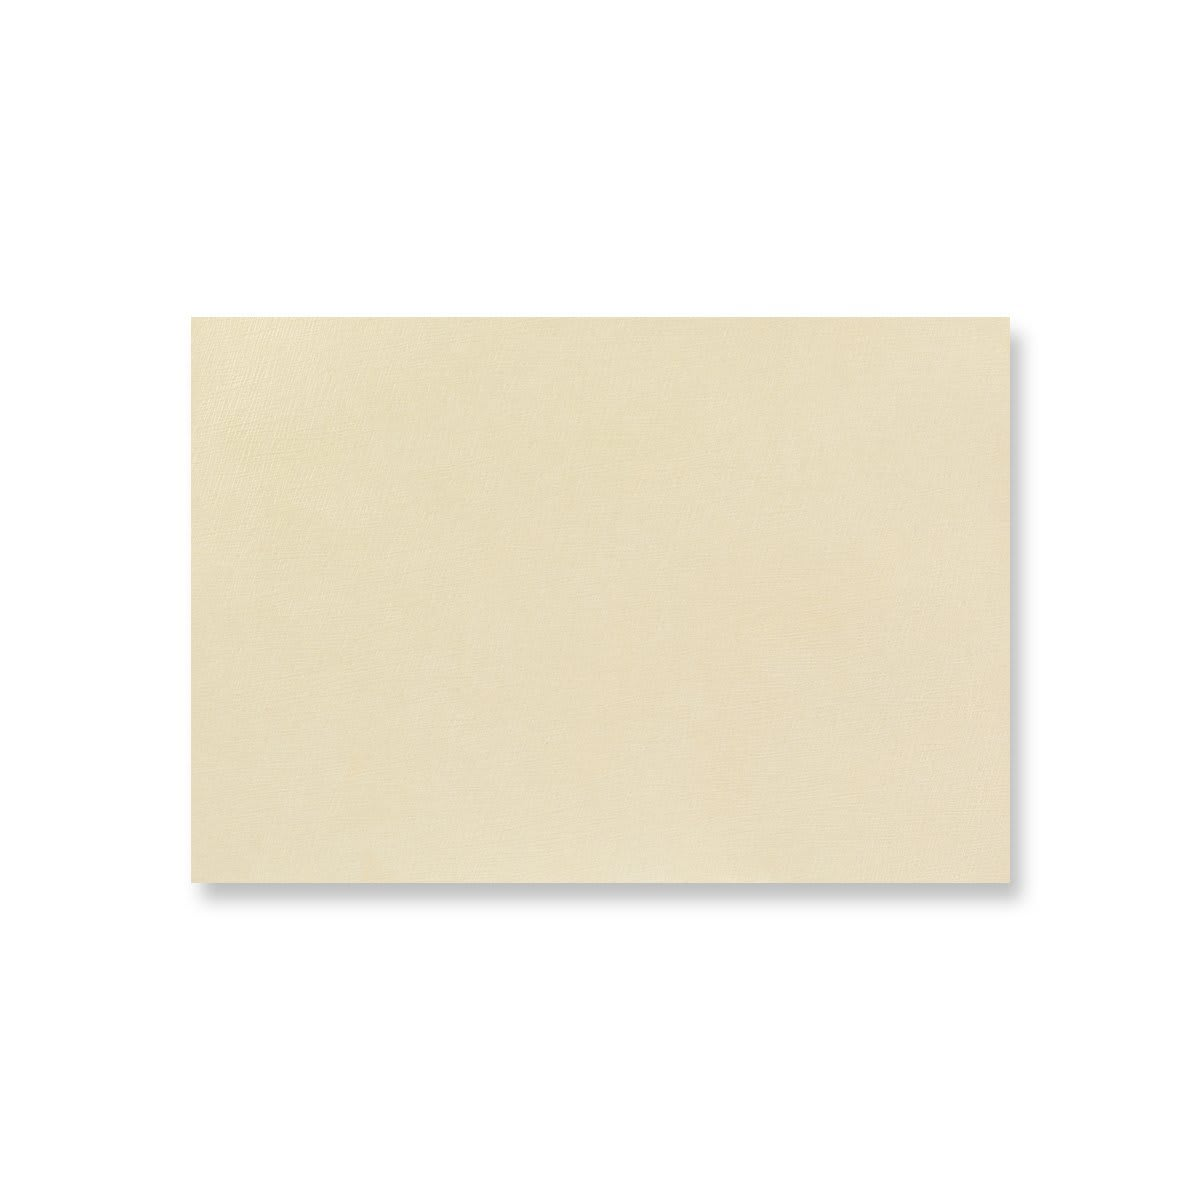 C6 CHAMPAGNE BUTTERFLY ENVELOPES